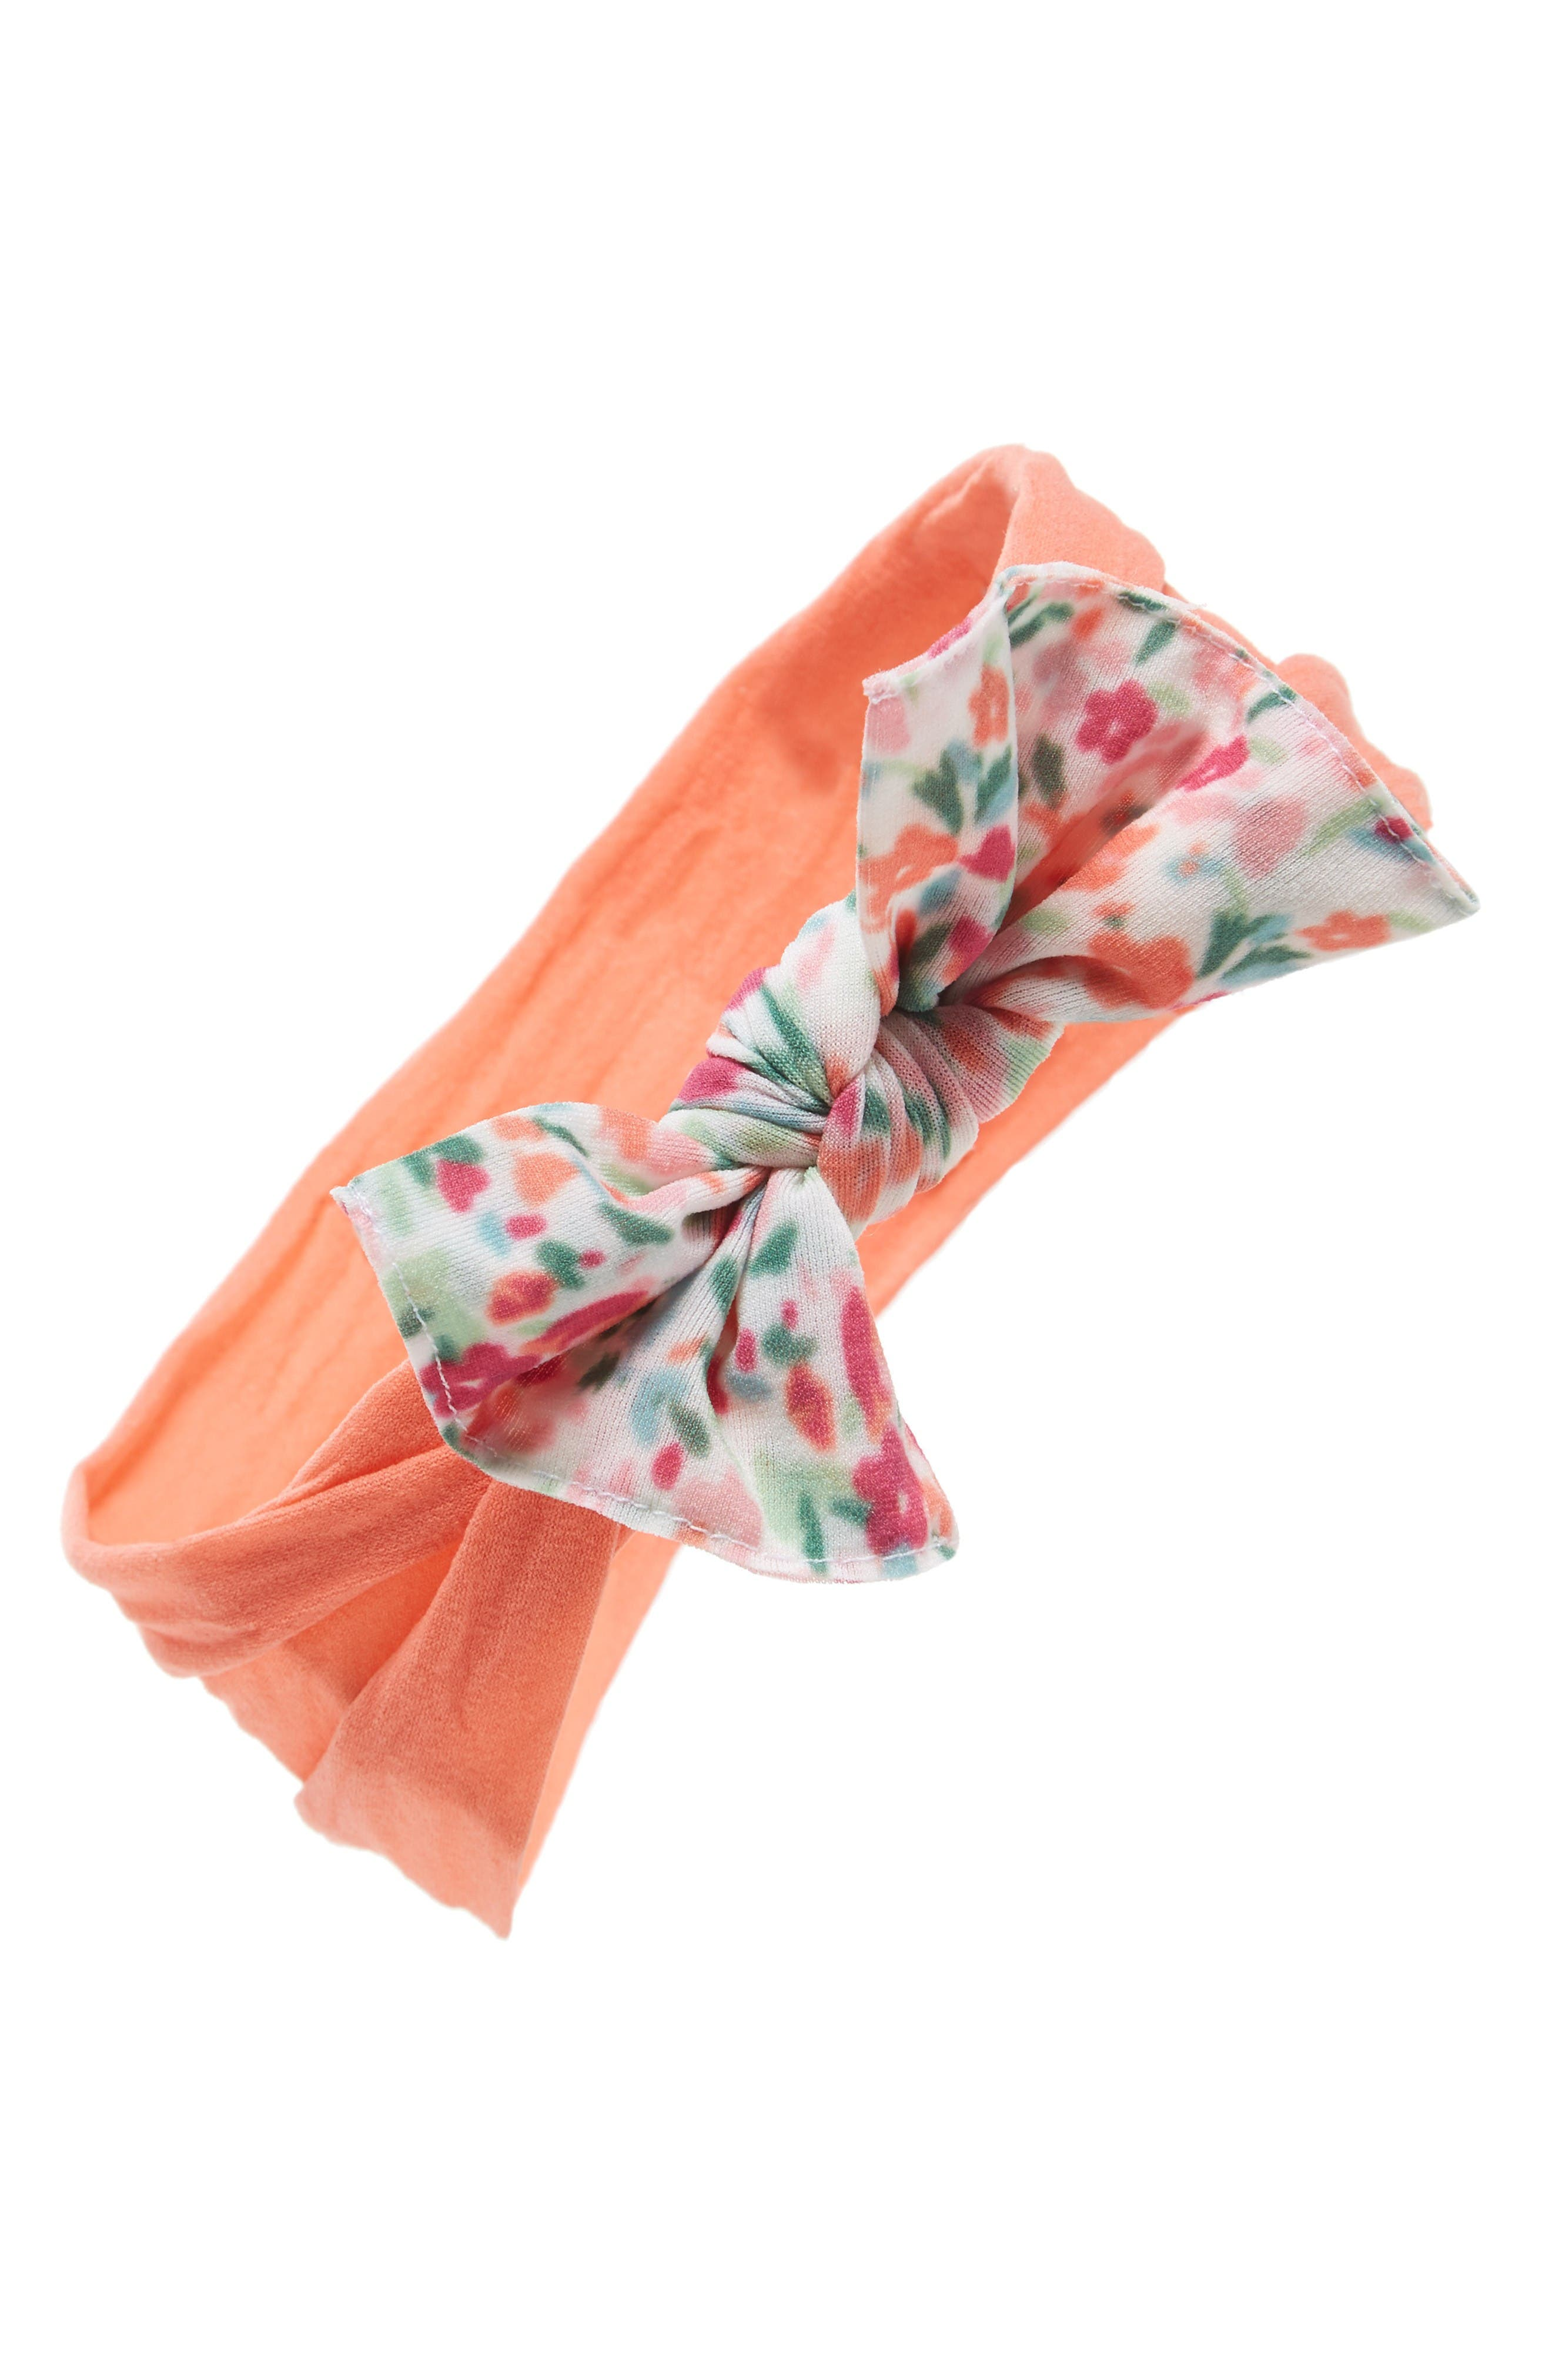 BABY BLING Print Knot Head Wrap